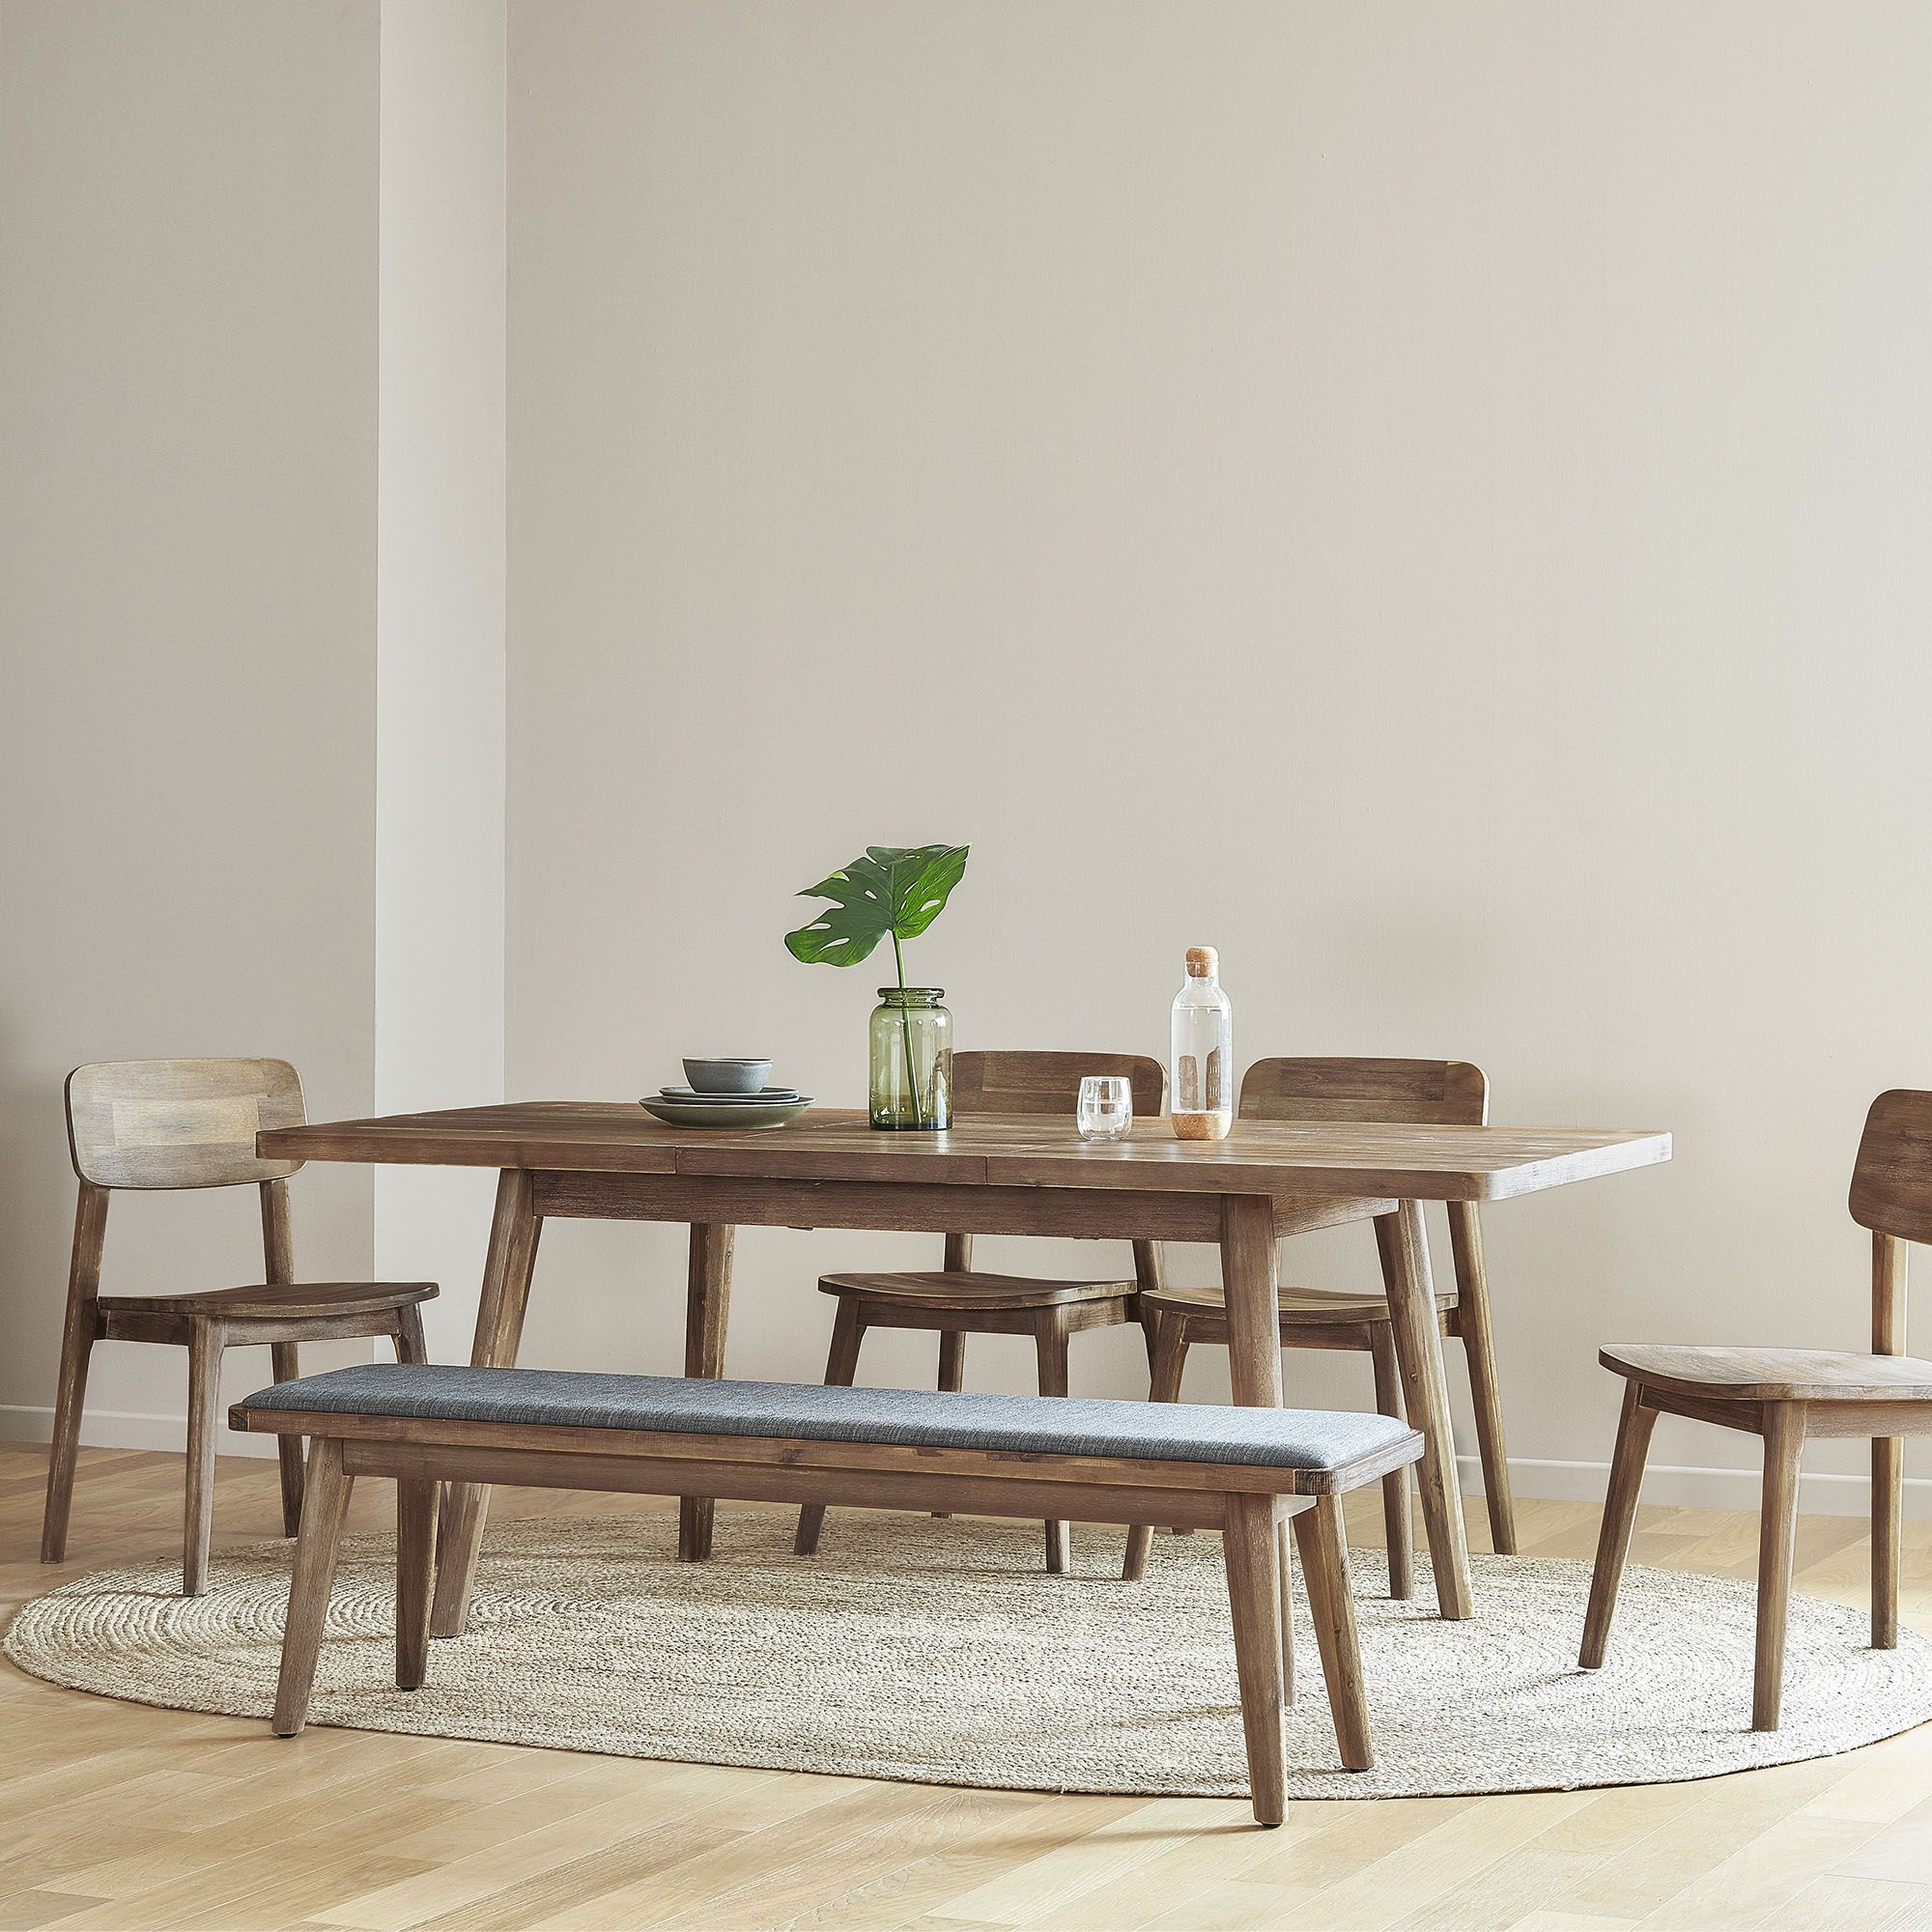 25+ Mid century dining table with bench Inspiration